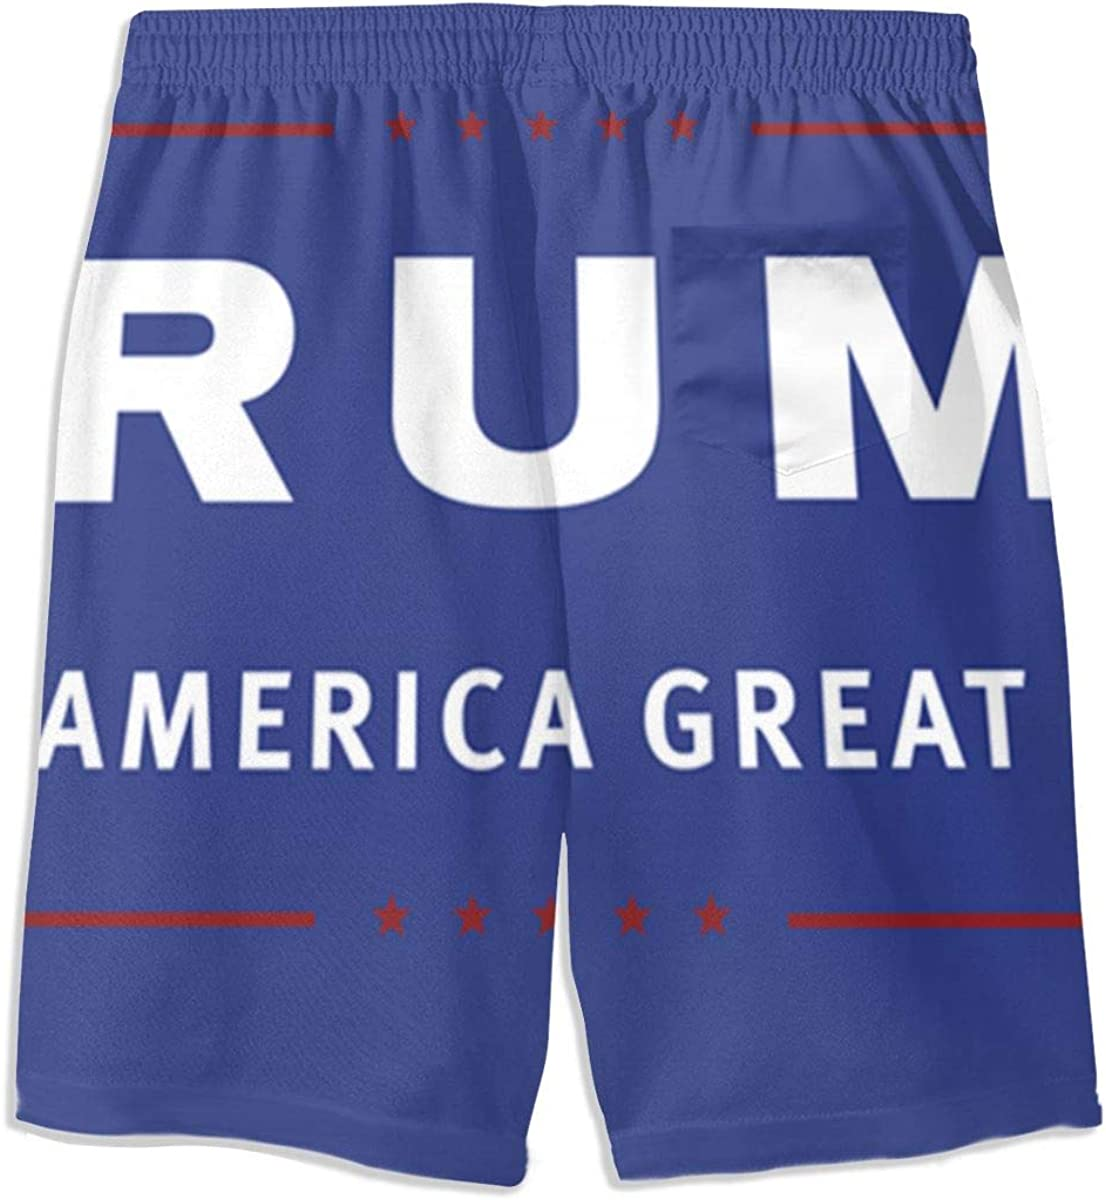 Hkany Make America Great Trump Teenager Boys Beachwear Beach Shorts Pants Board Shorts